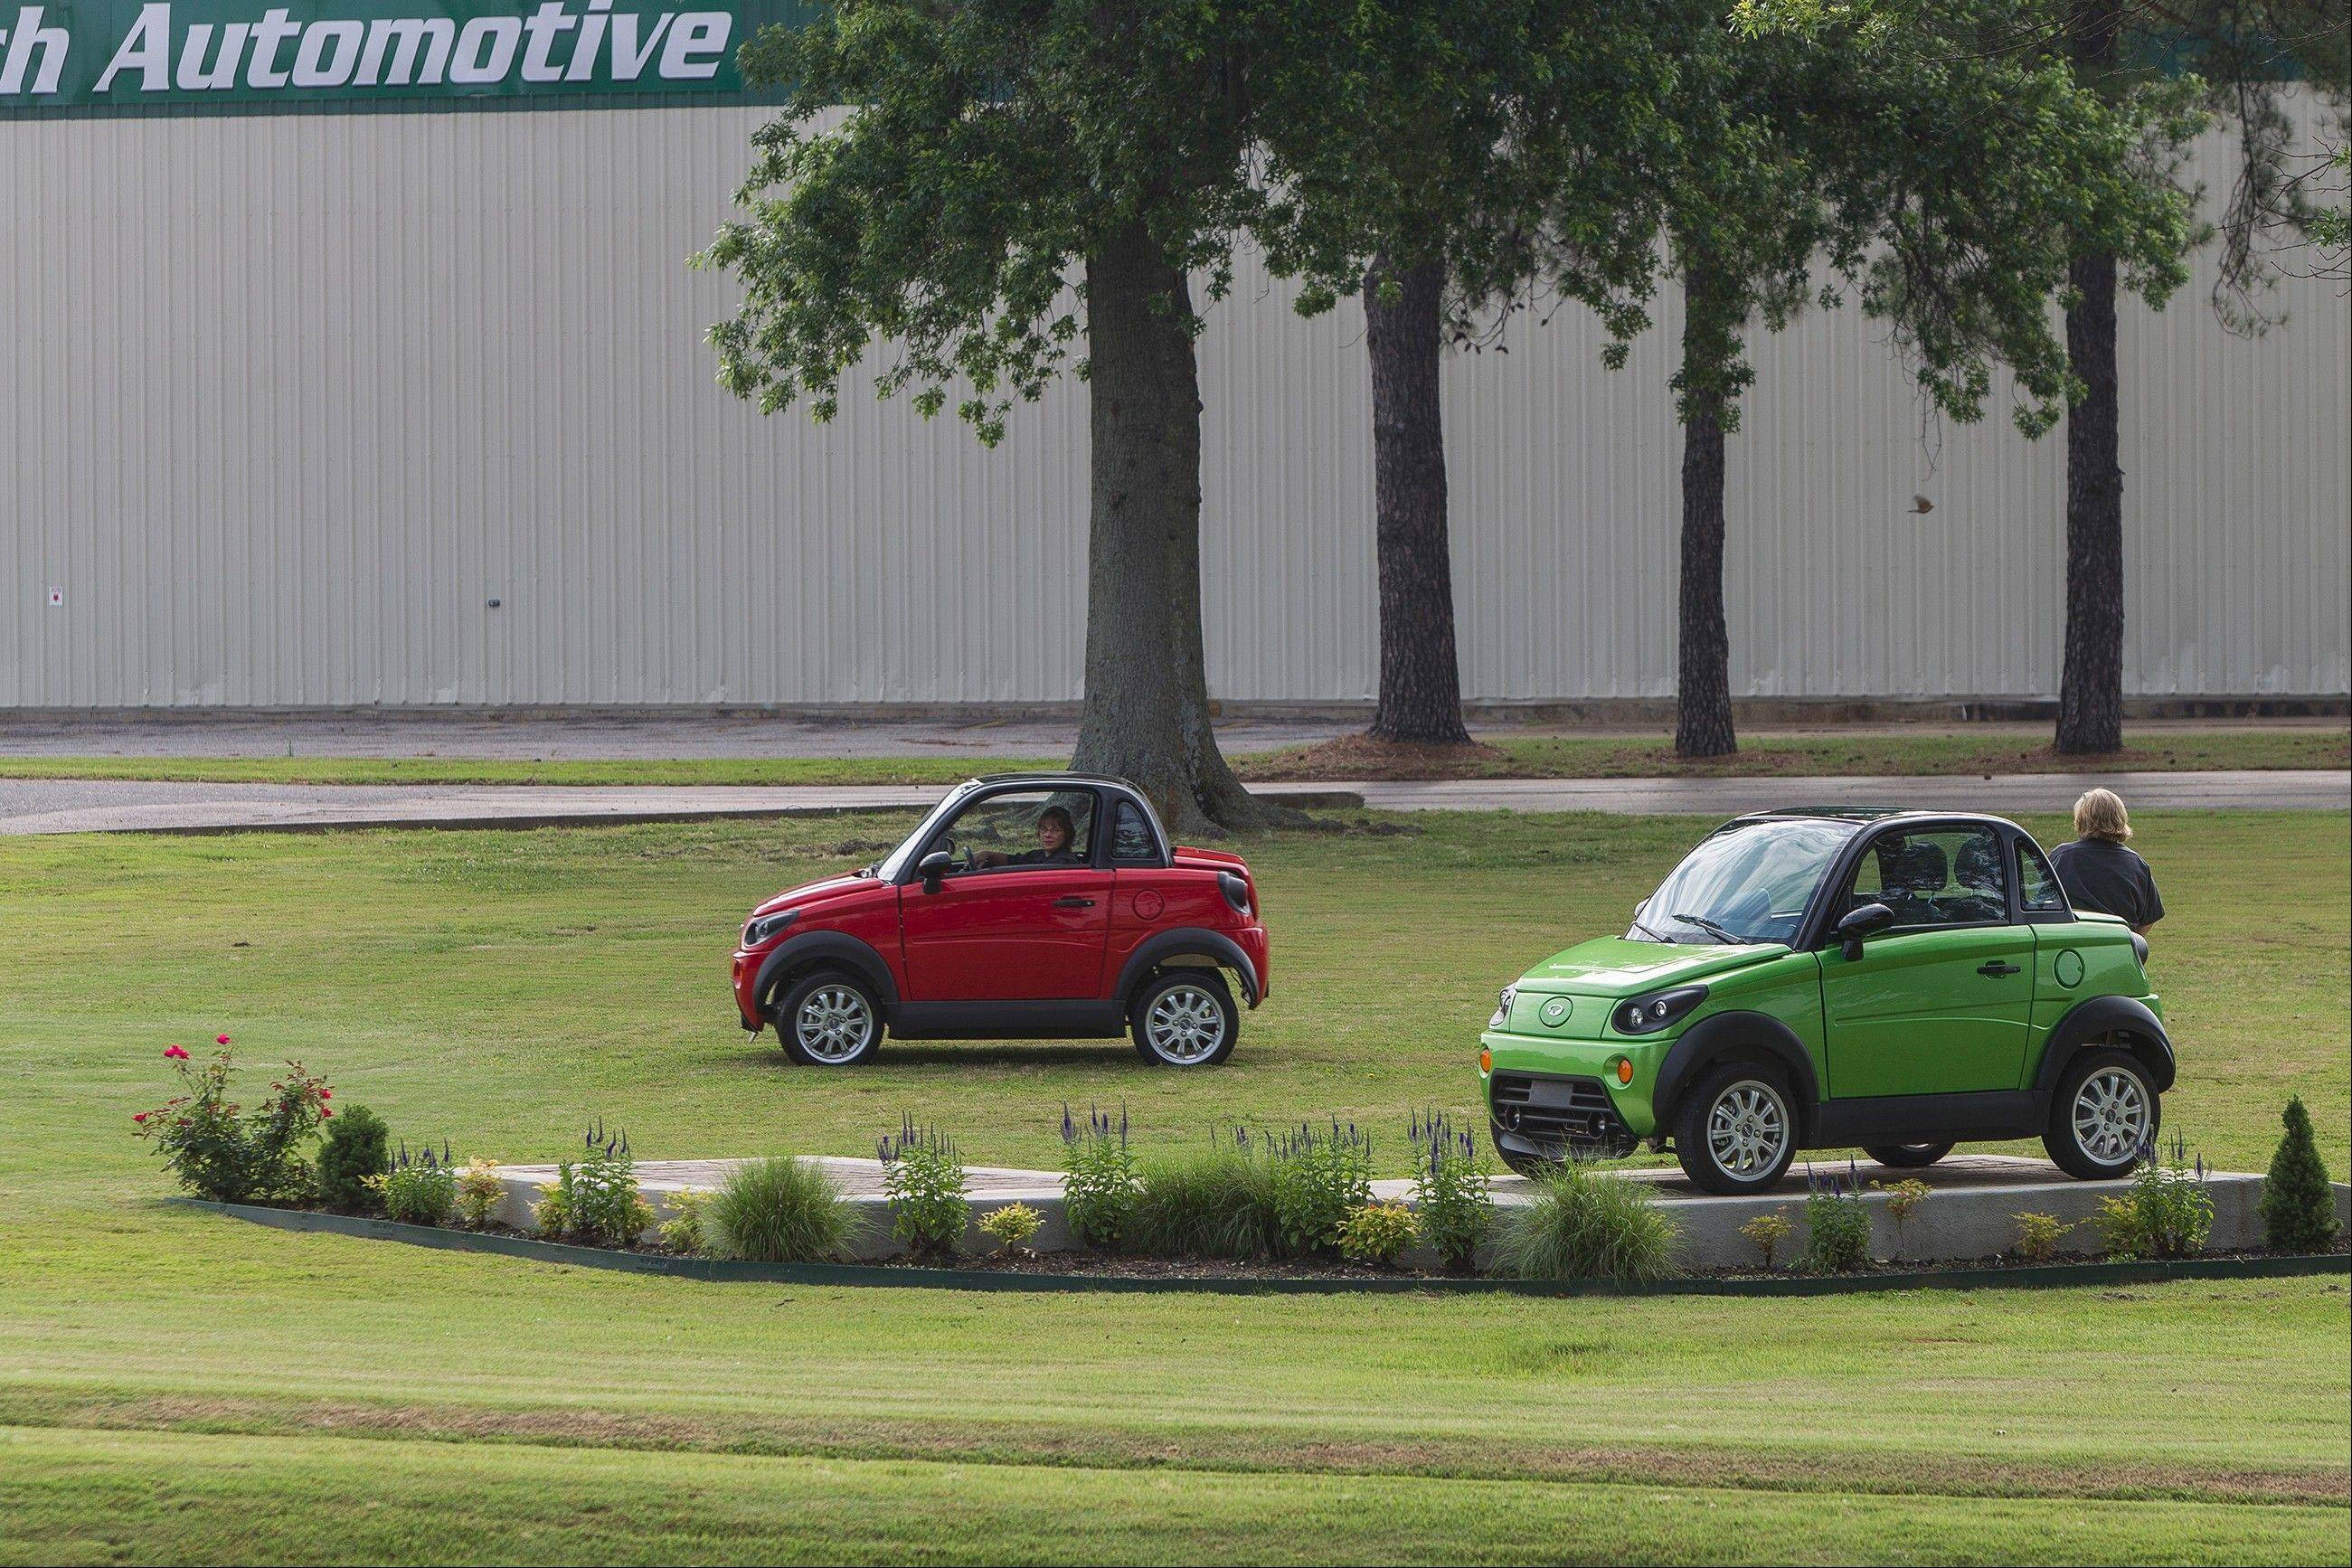 GreenTech Automotive's MyCar electric vehicles currently come from a temporary factory in Horn Lake, Miss. The company has said it plans to build a state-of-the-art plant in nearby Tunica.